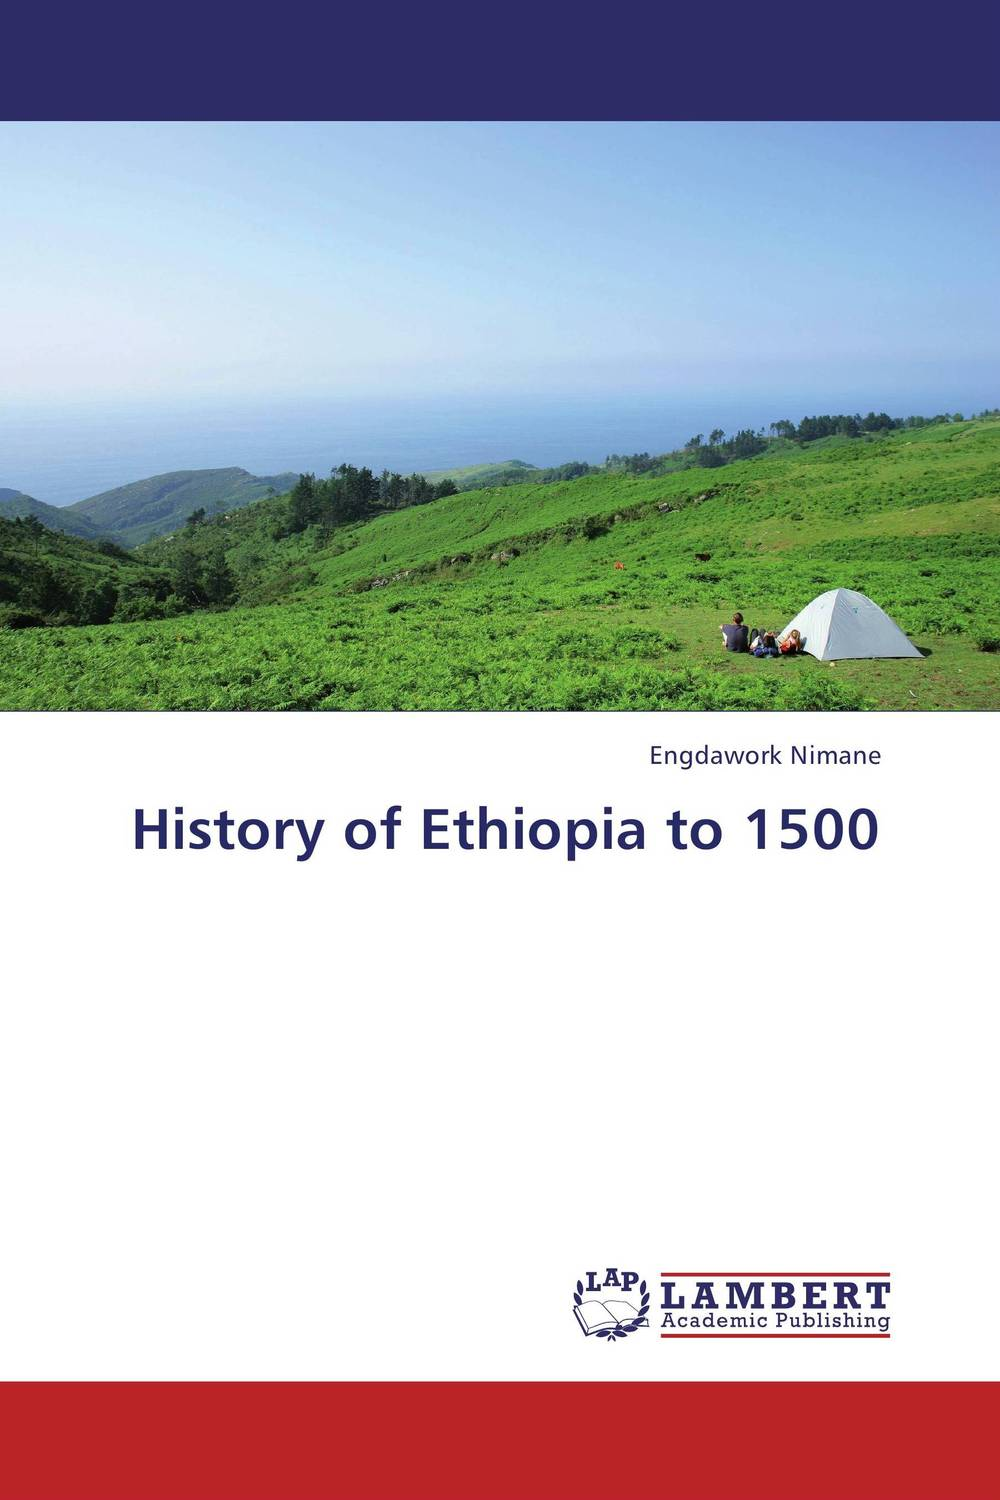 Фото History of Ethiopia to 1500 cervical cancer in amhara region in ethiopia